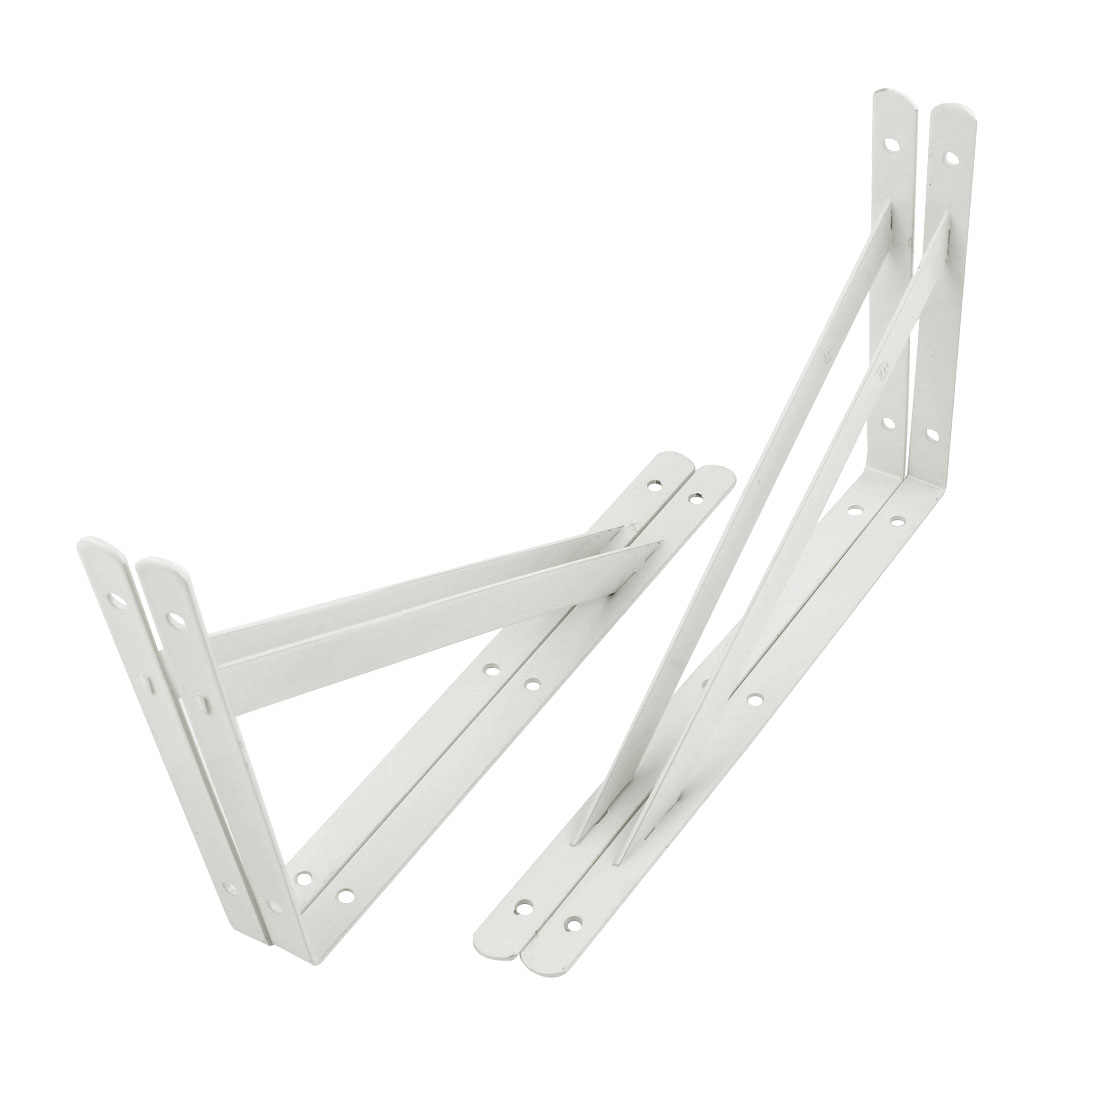 "10"" x 6"" White L Shaped Book Goods Holder Shelf Bracket Support 4 Pcs"